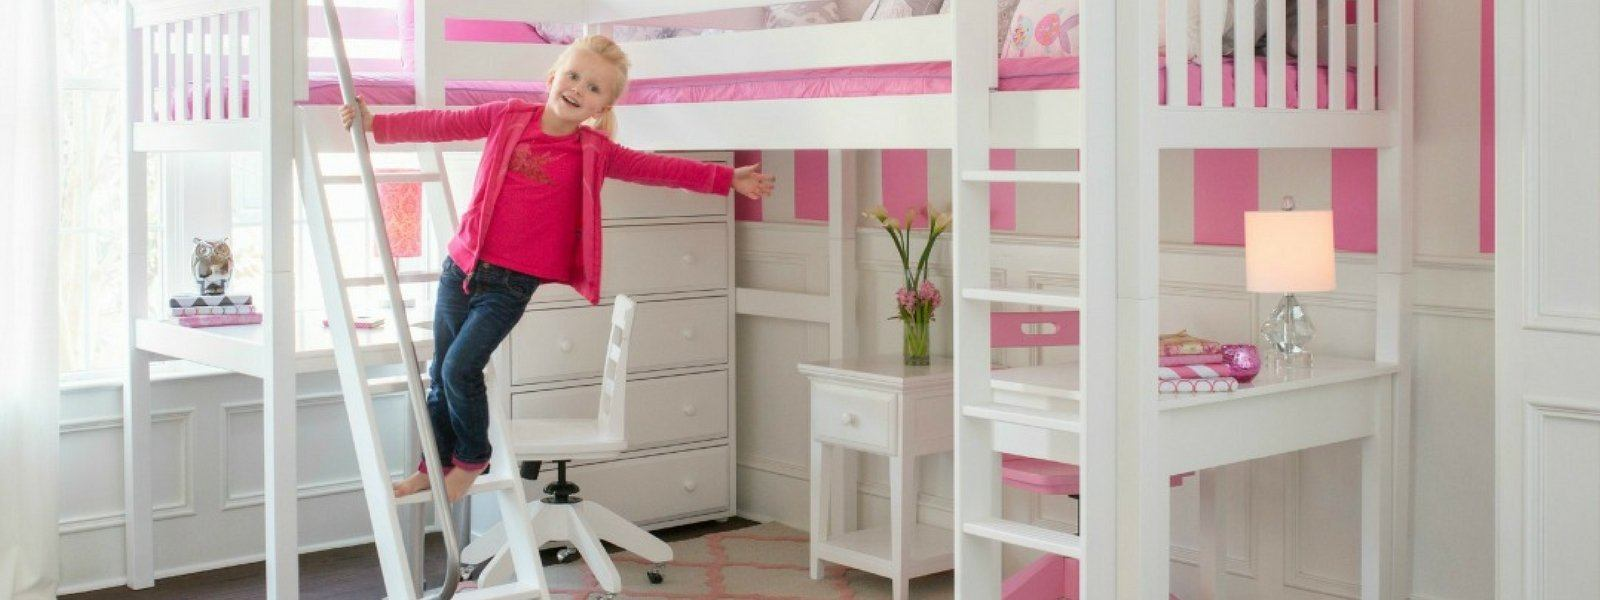 Look Whats Back in Stock - Popular Bunk Beds & Loft Beds